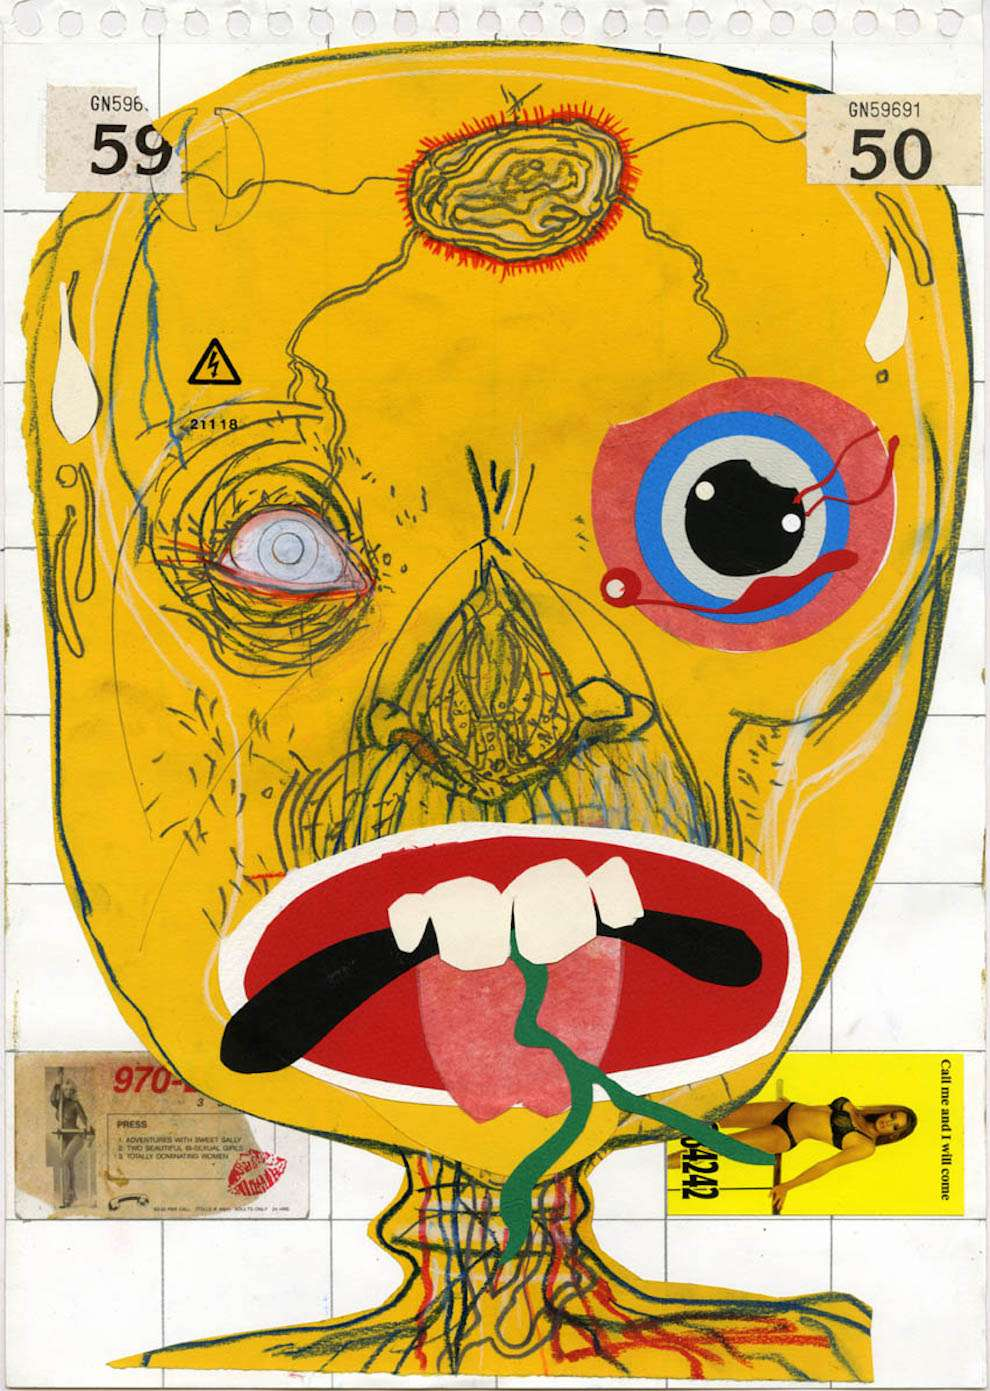 David Hughes, Collage and hand-drawn illustration of a surreal orange face. No, not trump.